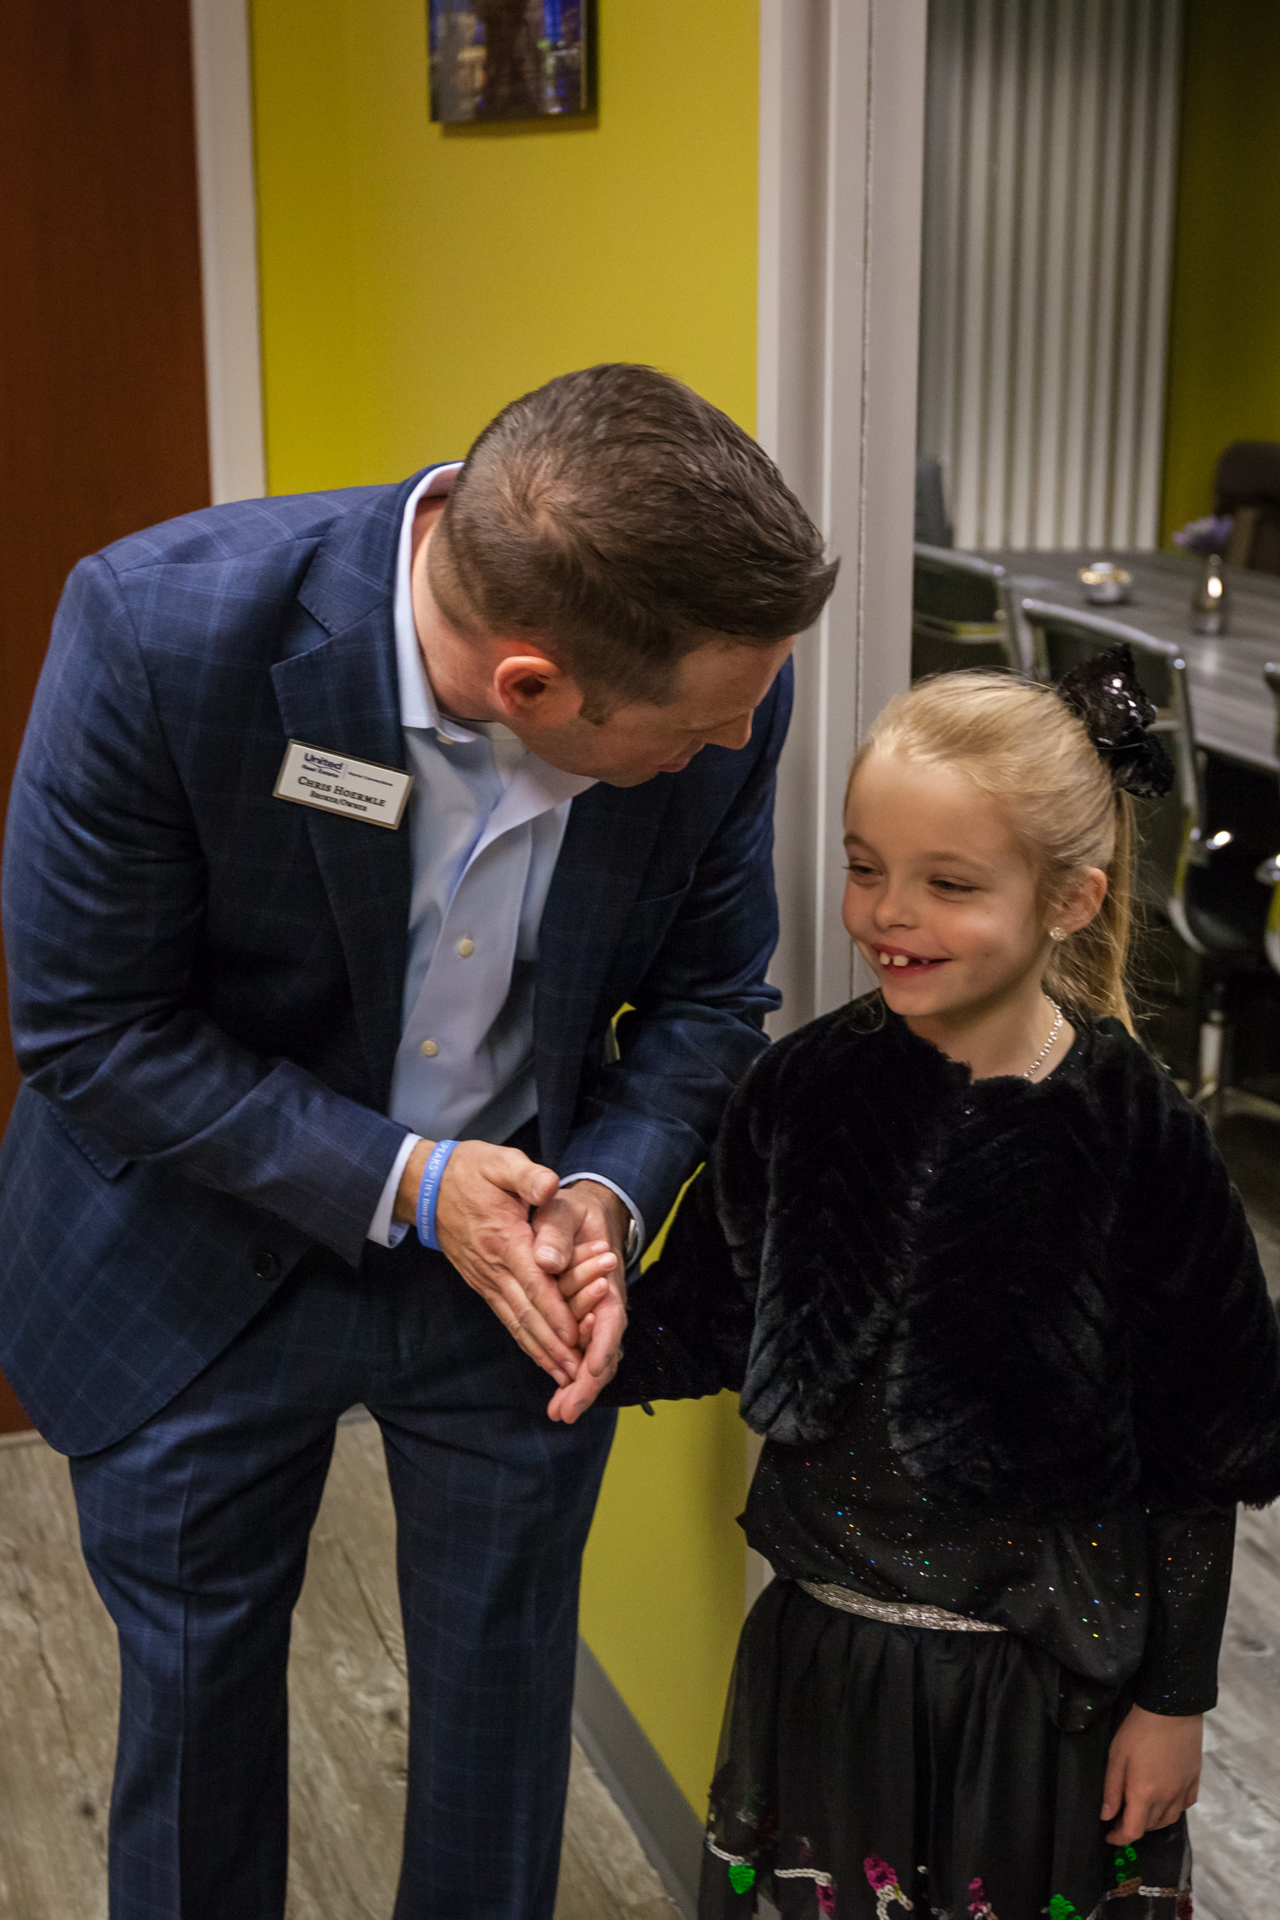 A man in a suit talking to a young girl